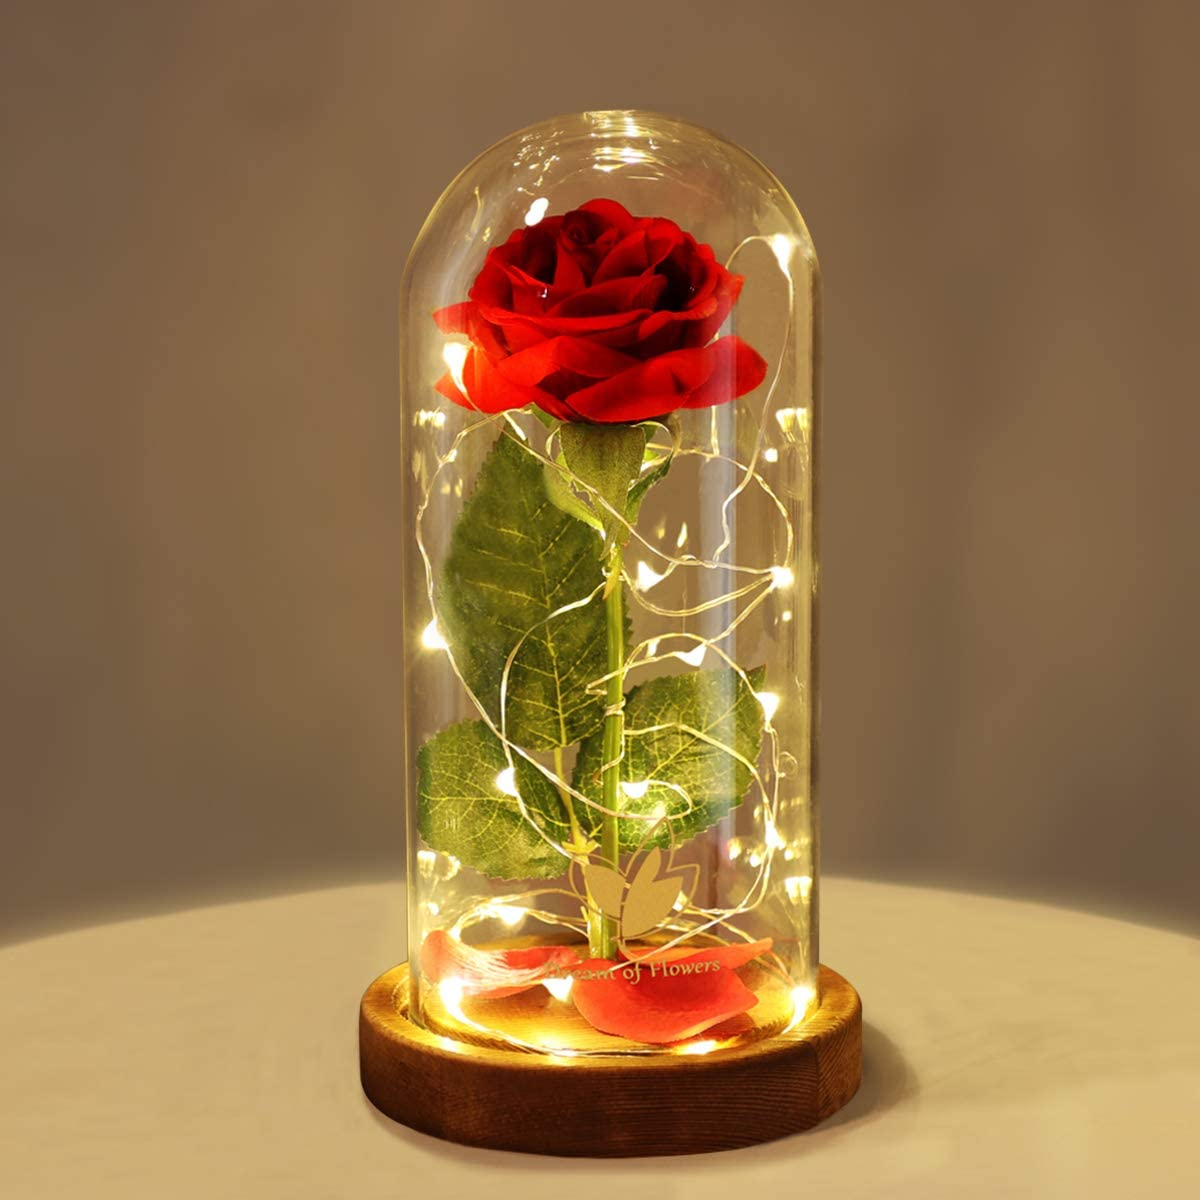 Amazon Com Dream Of Flowers Beauty And The Beast Red Rose In Glass Dome With Fairy Light String Valentine Rose Gift For Her Gifts For Girlfriend Mother S Day Gifts Home Kitchen